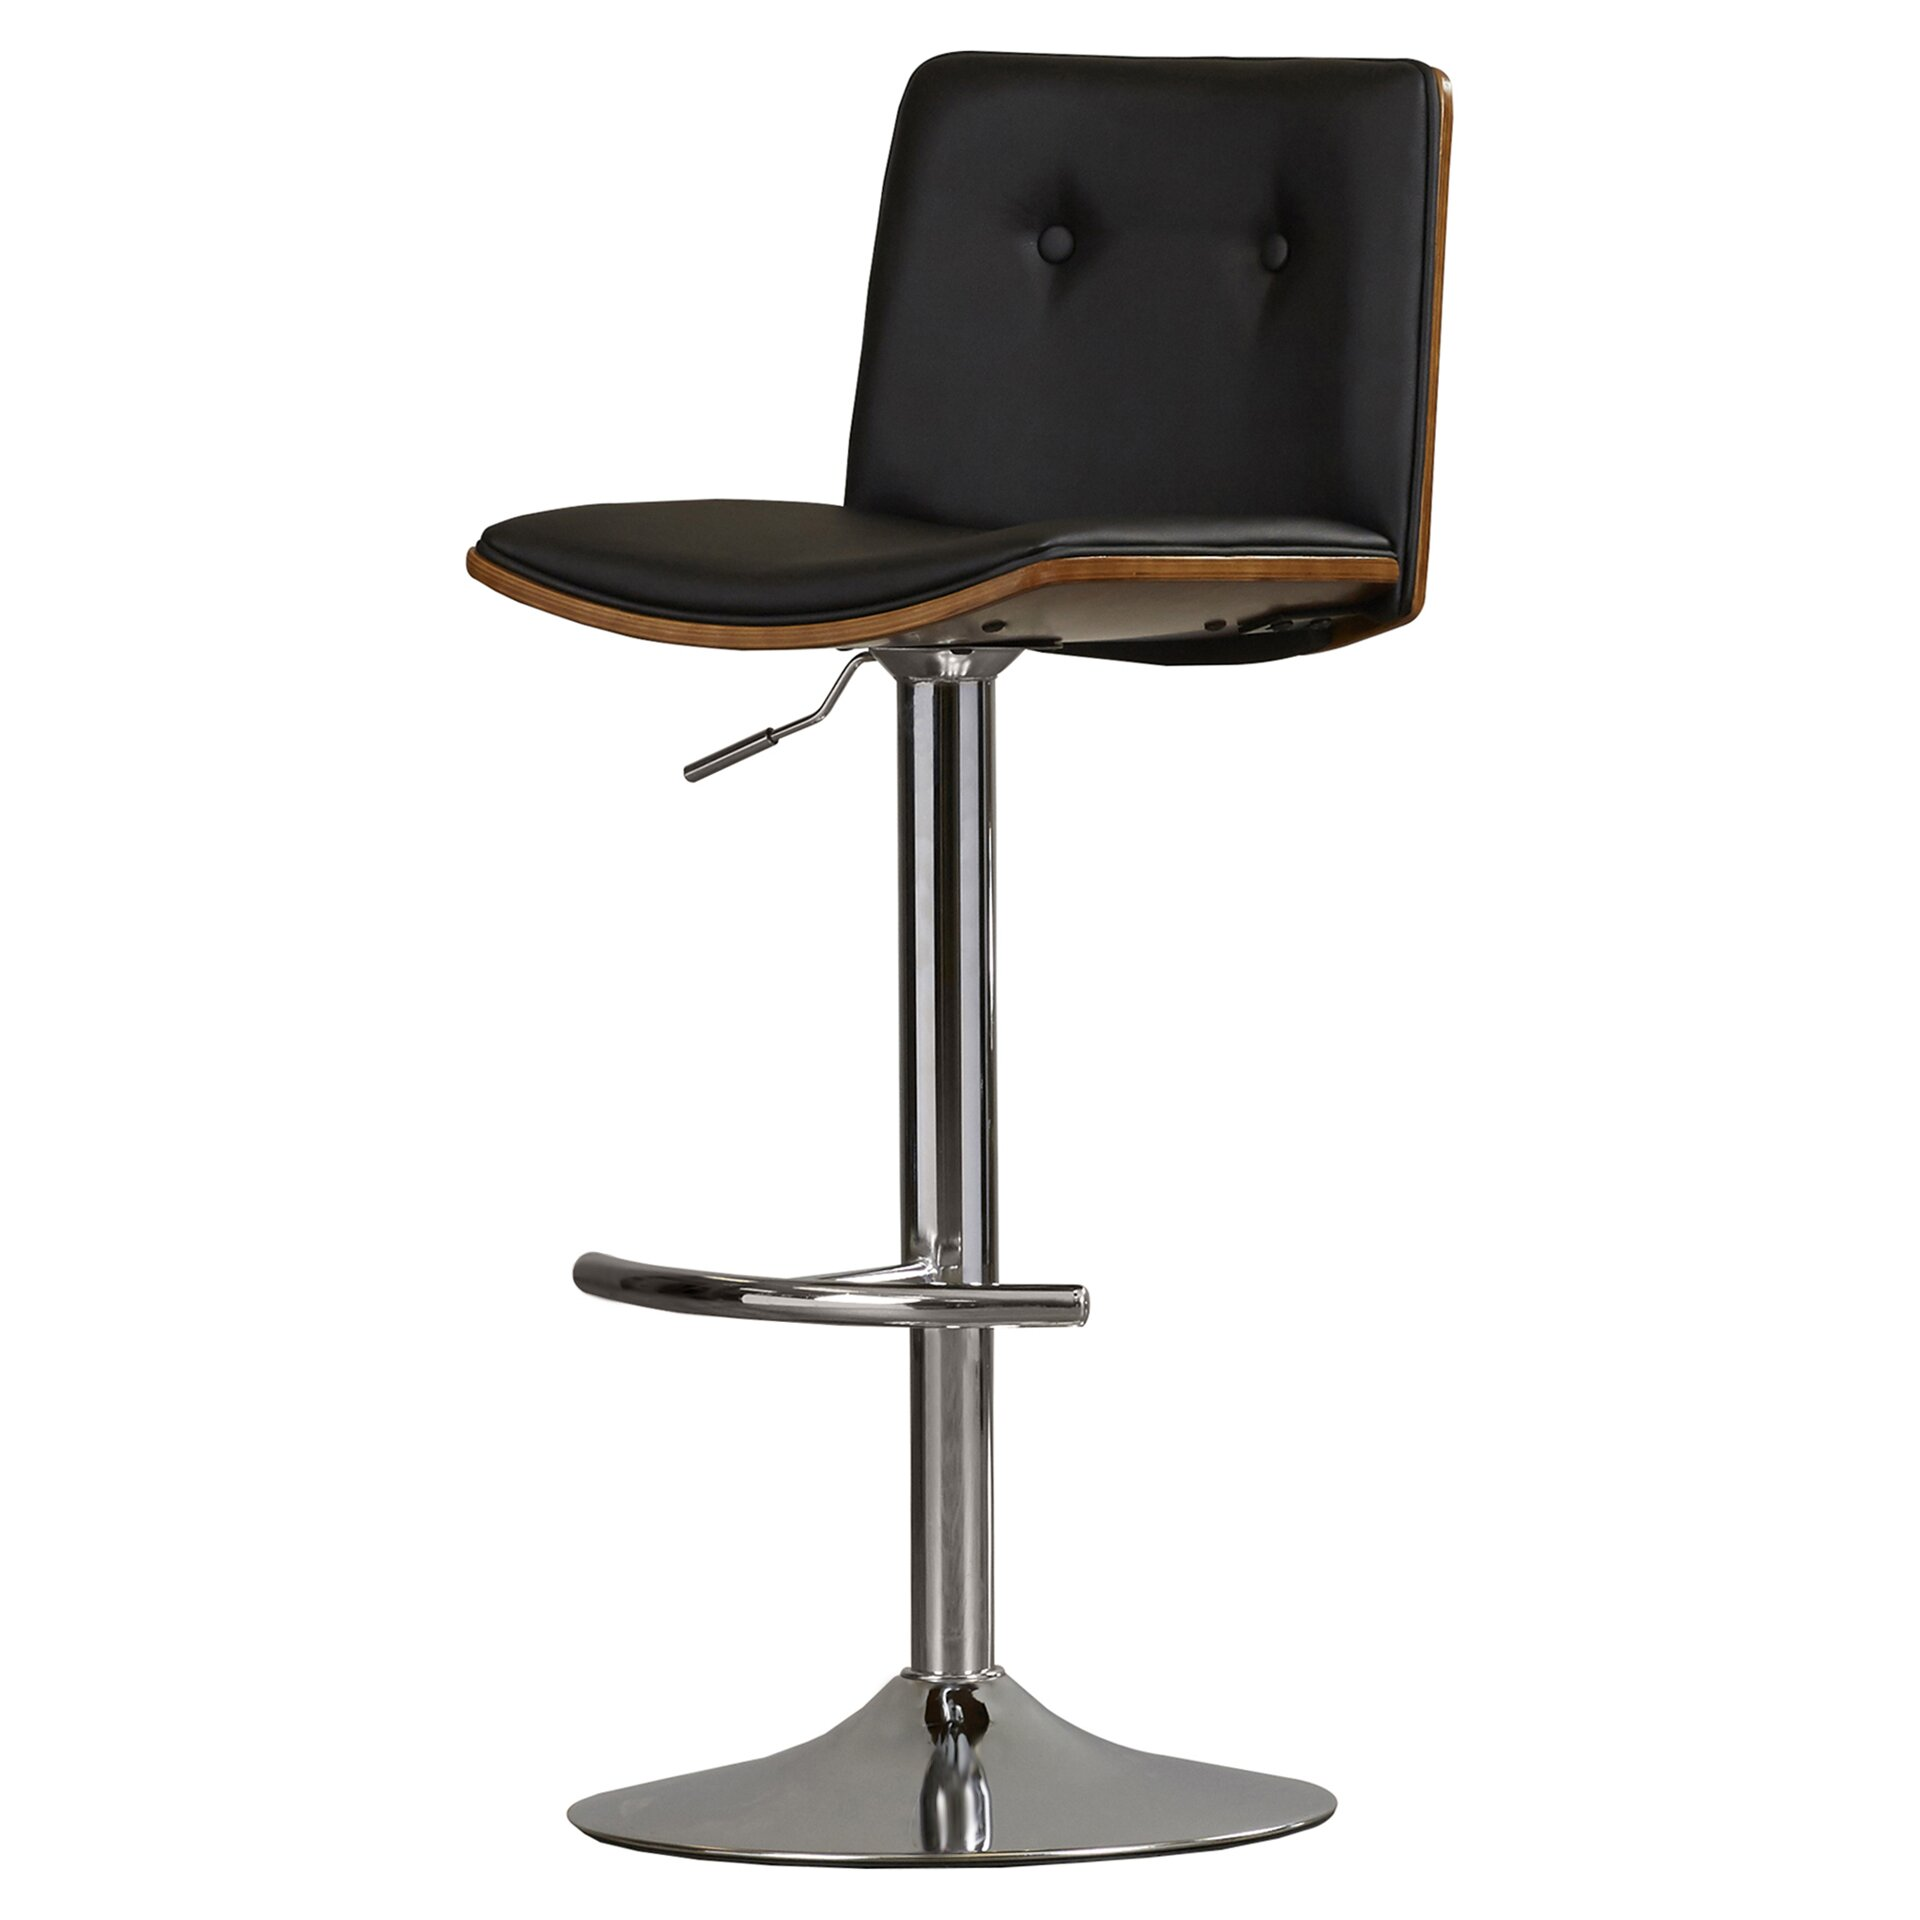 Brayden Studio Adjustable Height Swivel Bar Stool  : 35 Swivel Bar Stool with Cushion ZIPC2029 from www.wayfair.ca size 1920 x 1920 jpeg 165kB